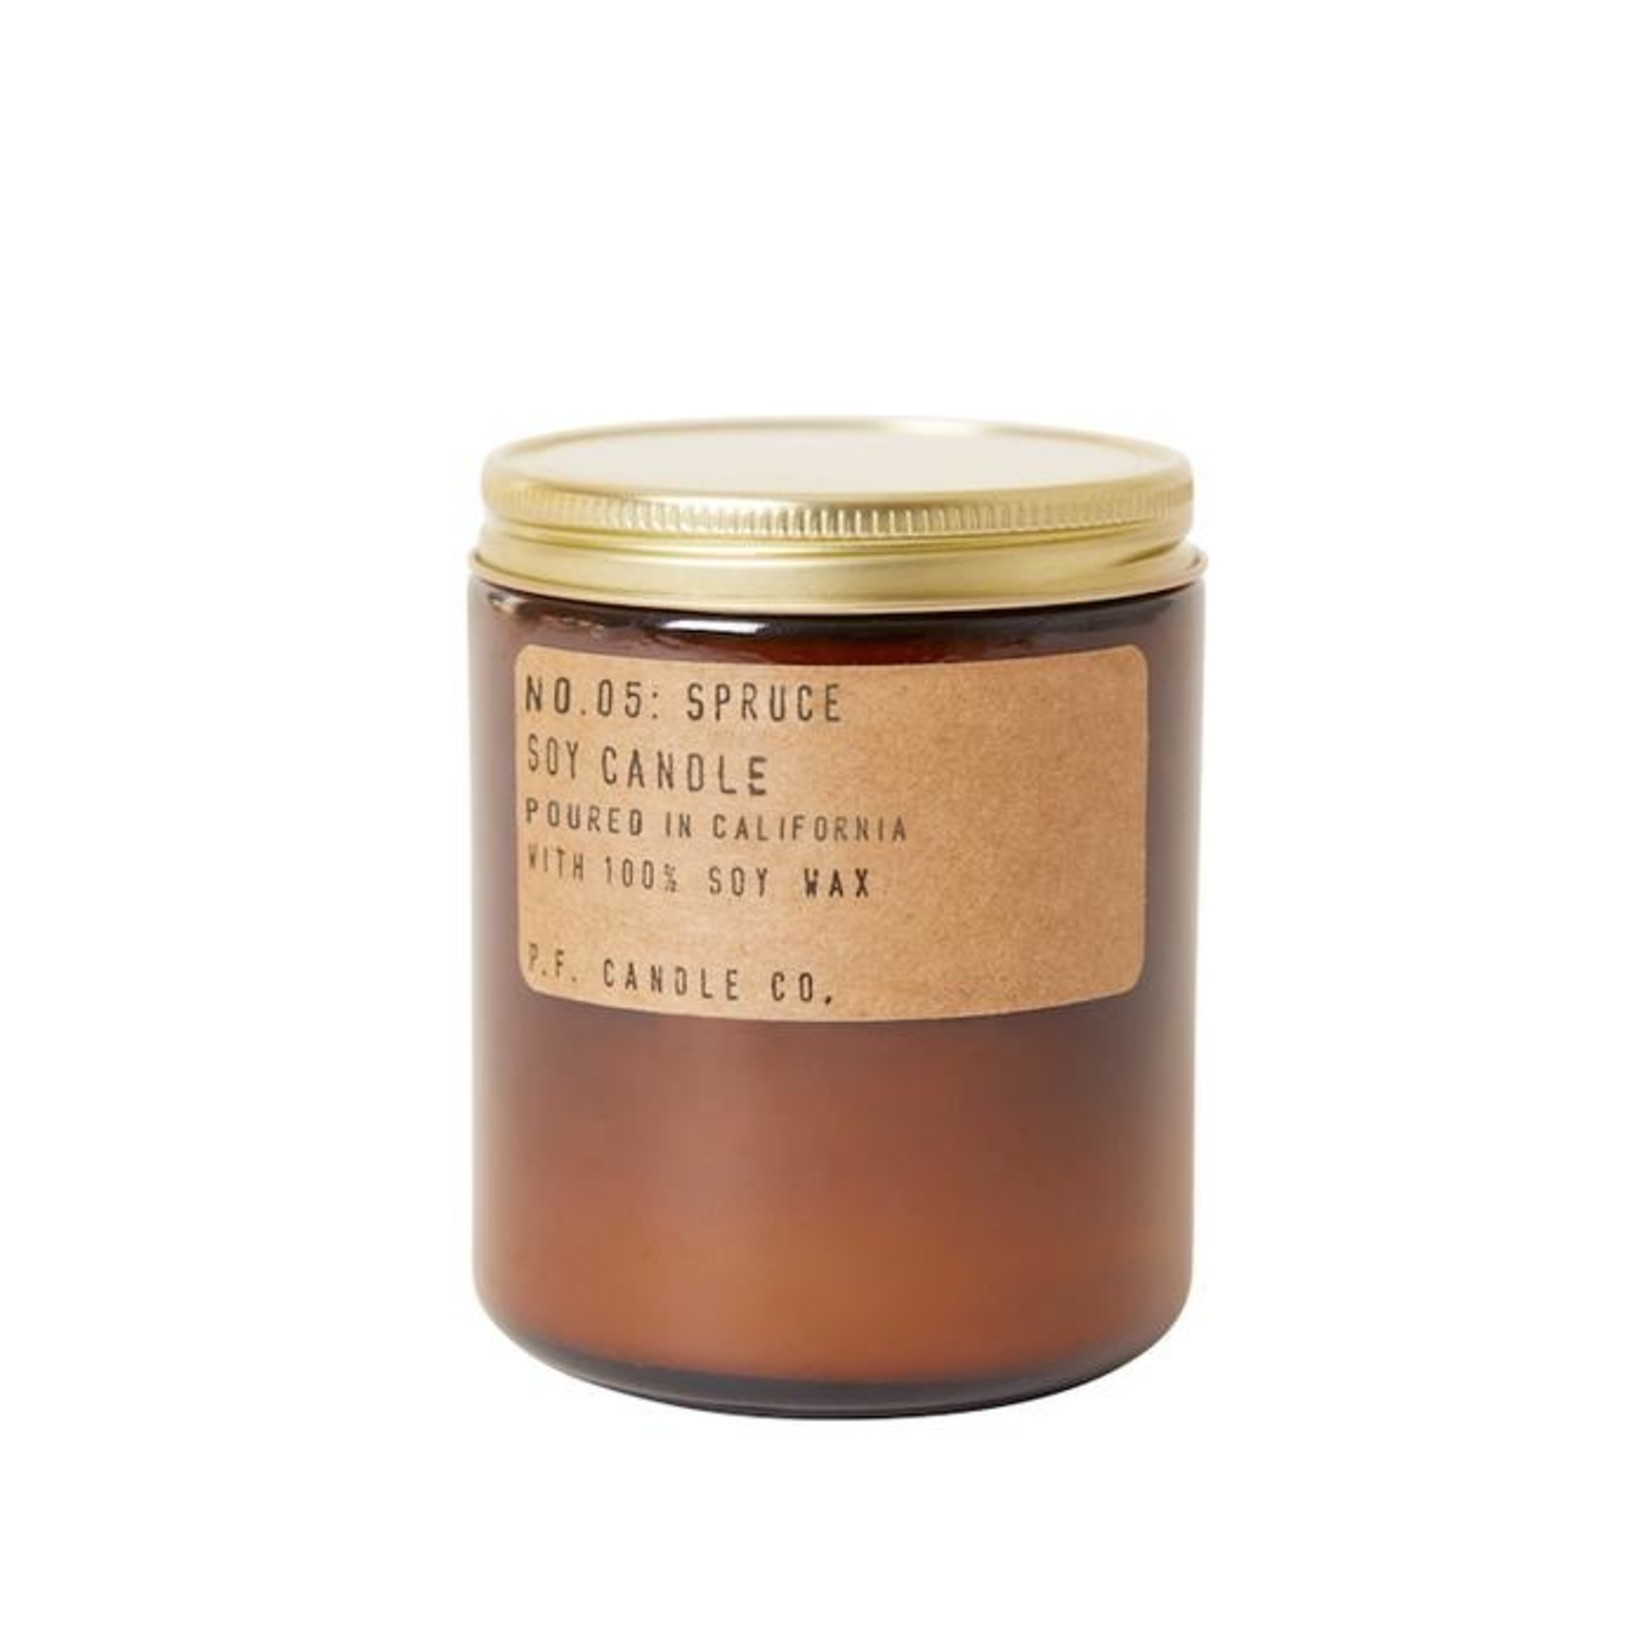 PF Candle Co Spruce Candle (7.2 oz)